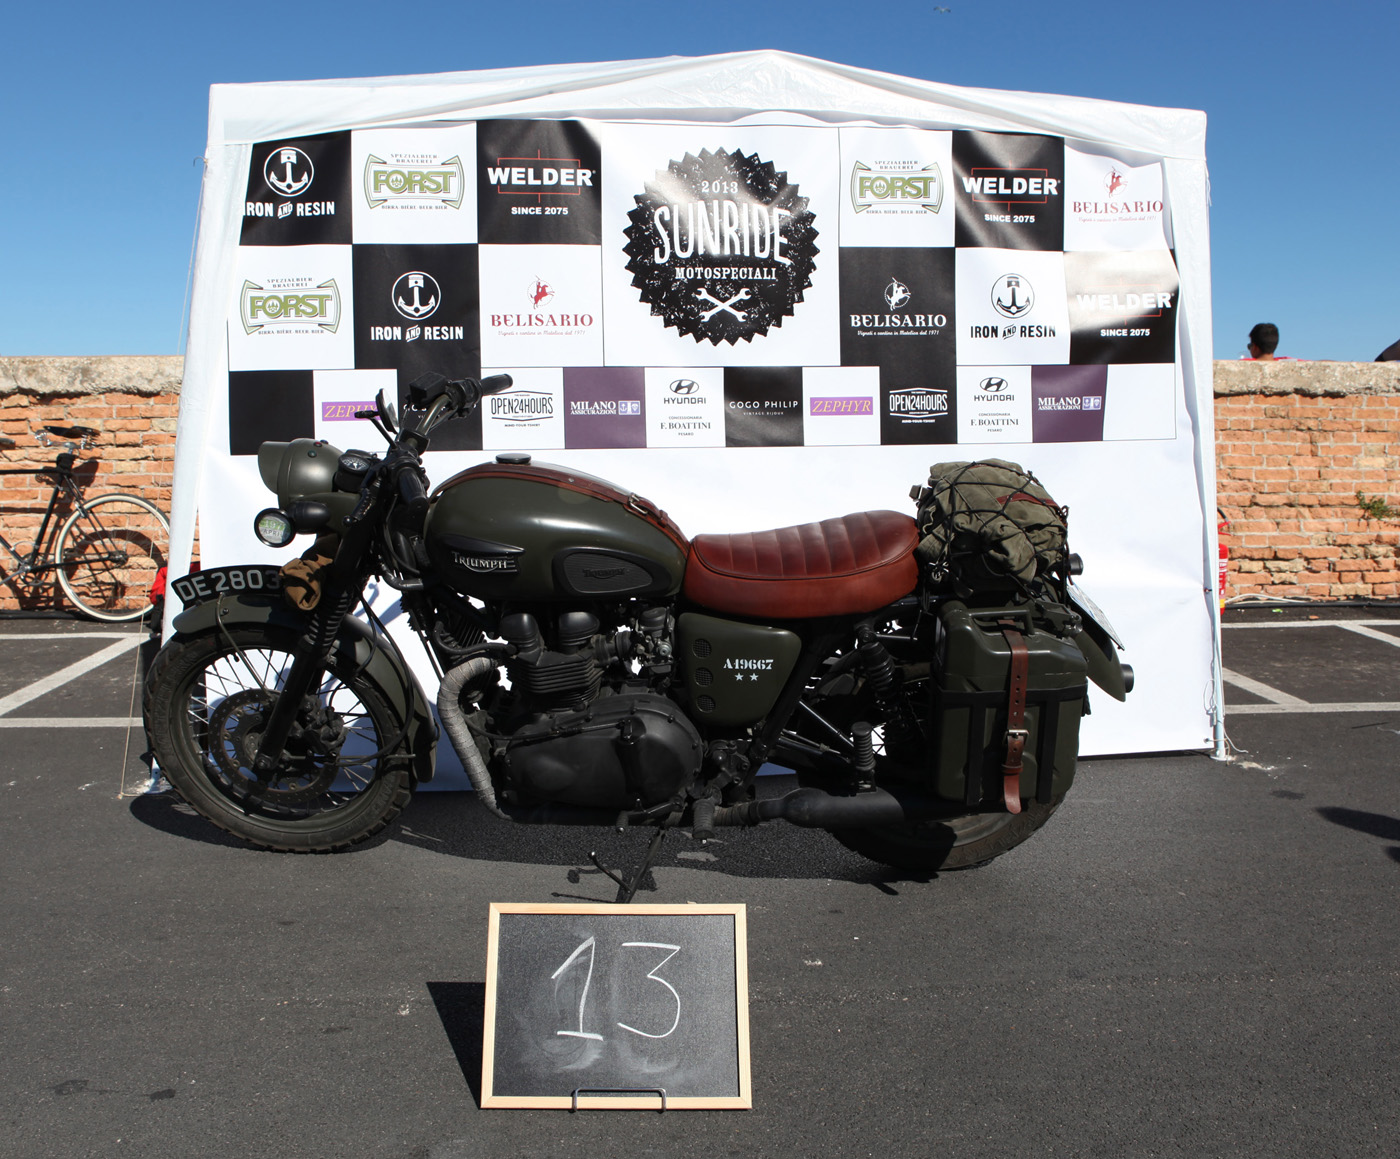 Triumph Bonneville - 2007 / The Great Escape  - 2010 by Dino Romano